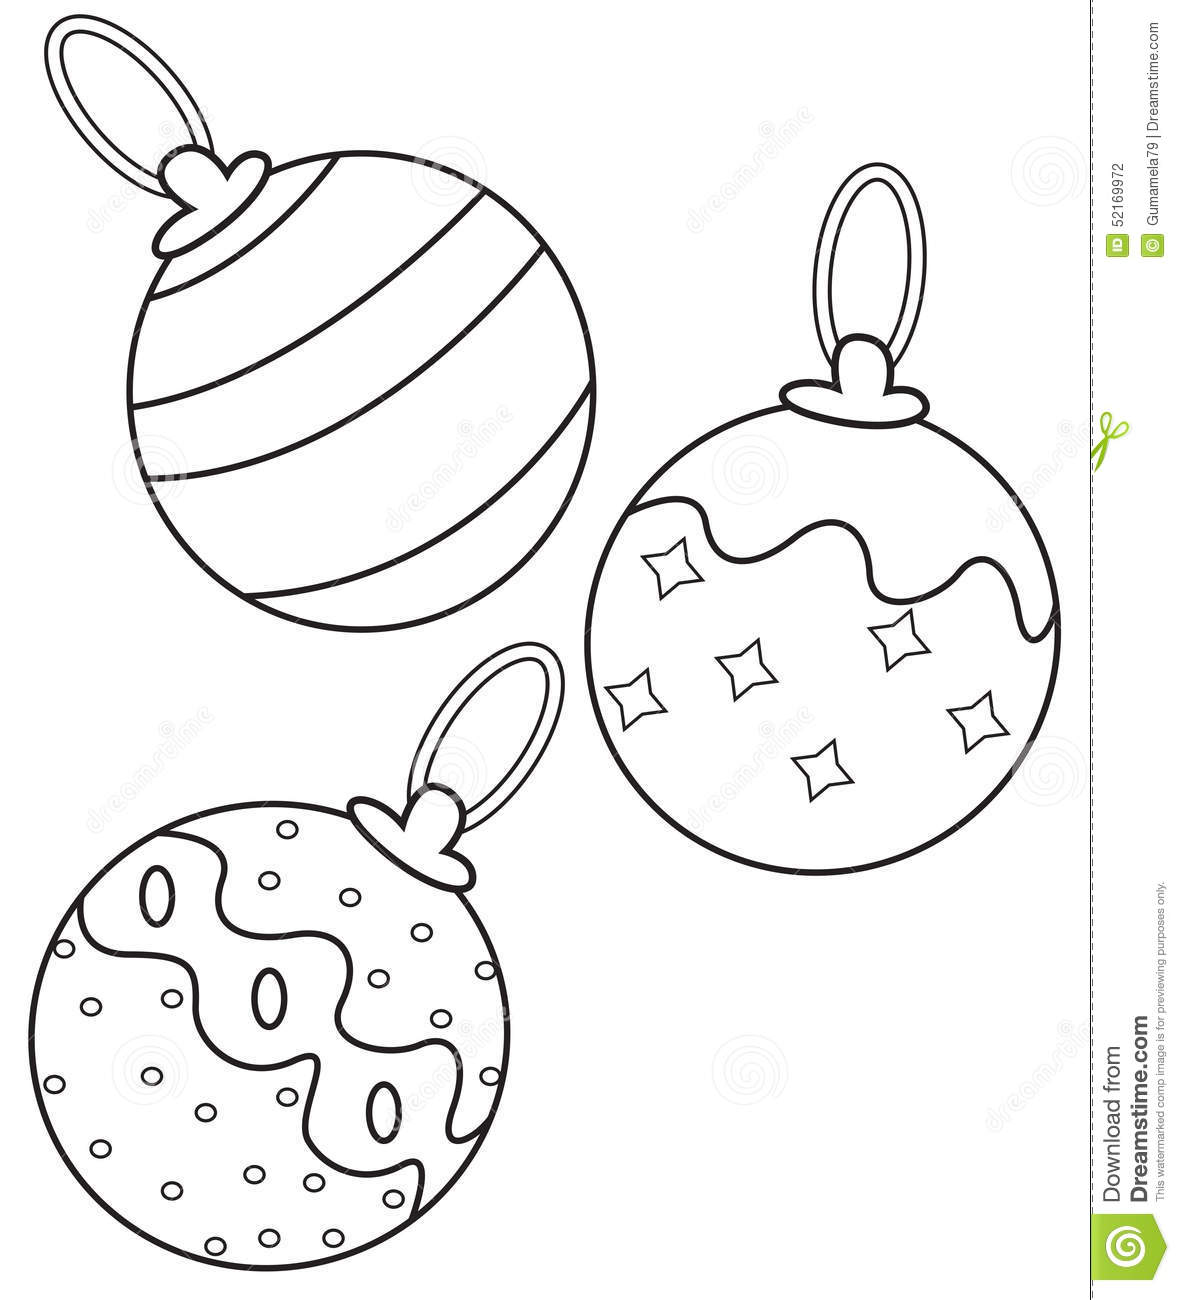 christmas balls coloring page stock illustration image 52169972